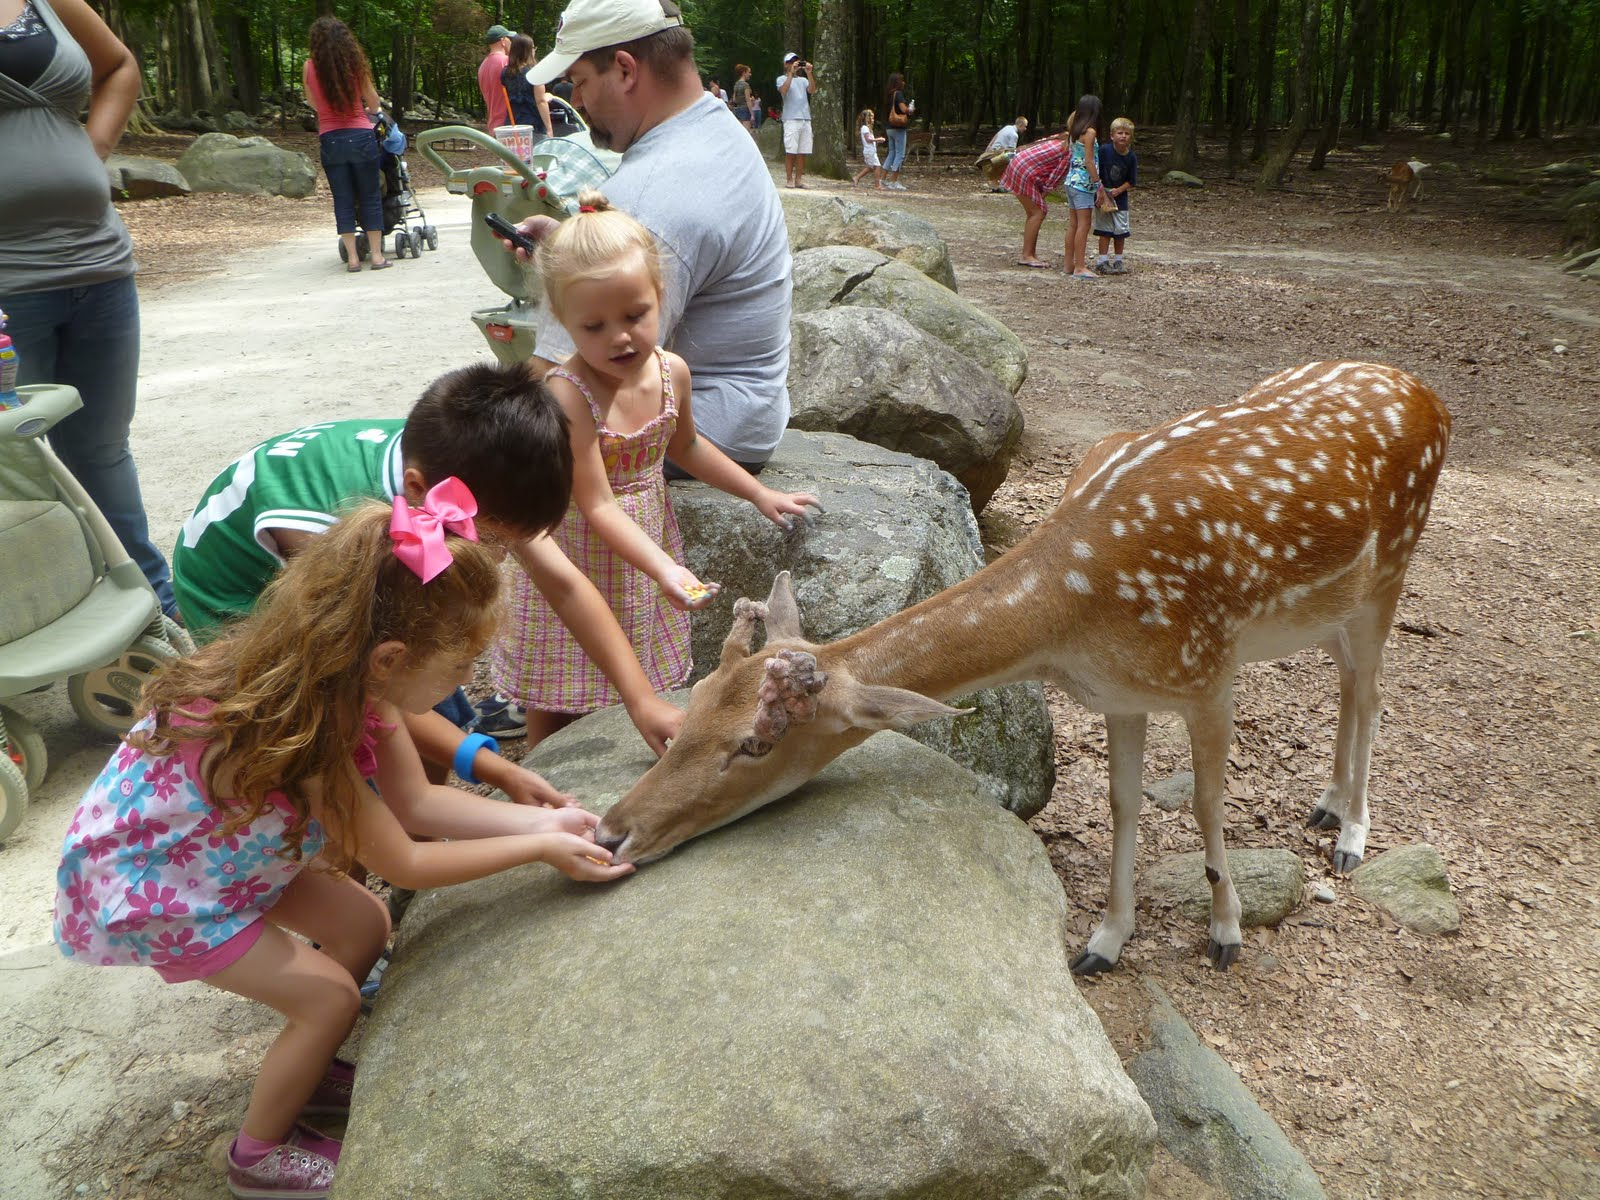 Franklin park zoo discount coupons 2019